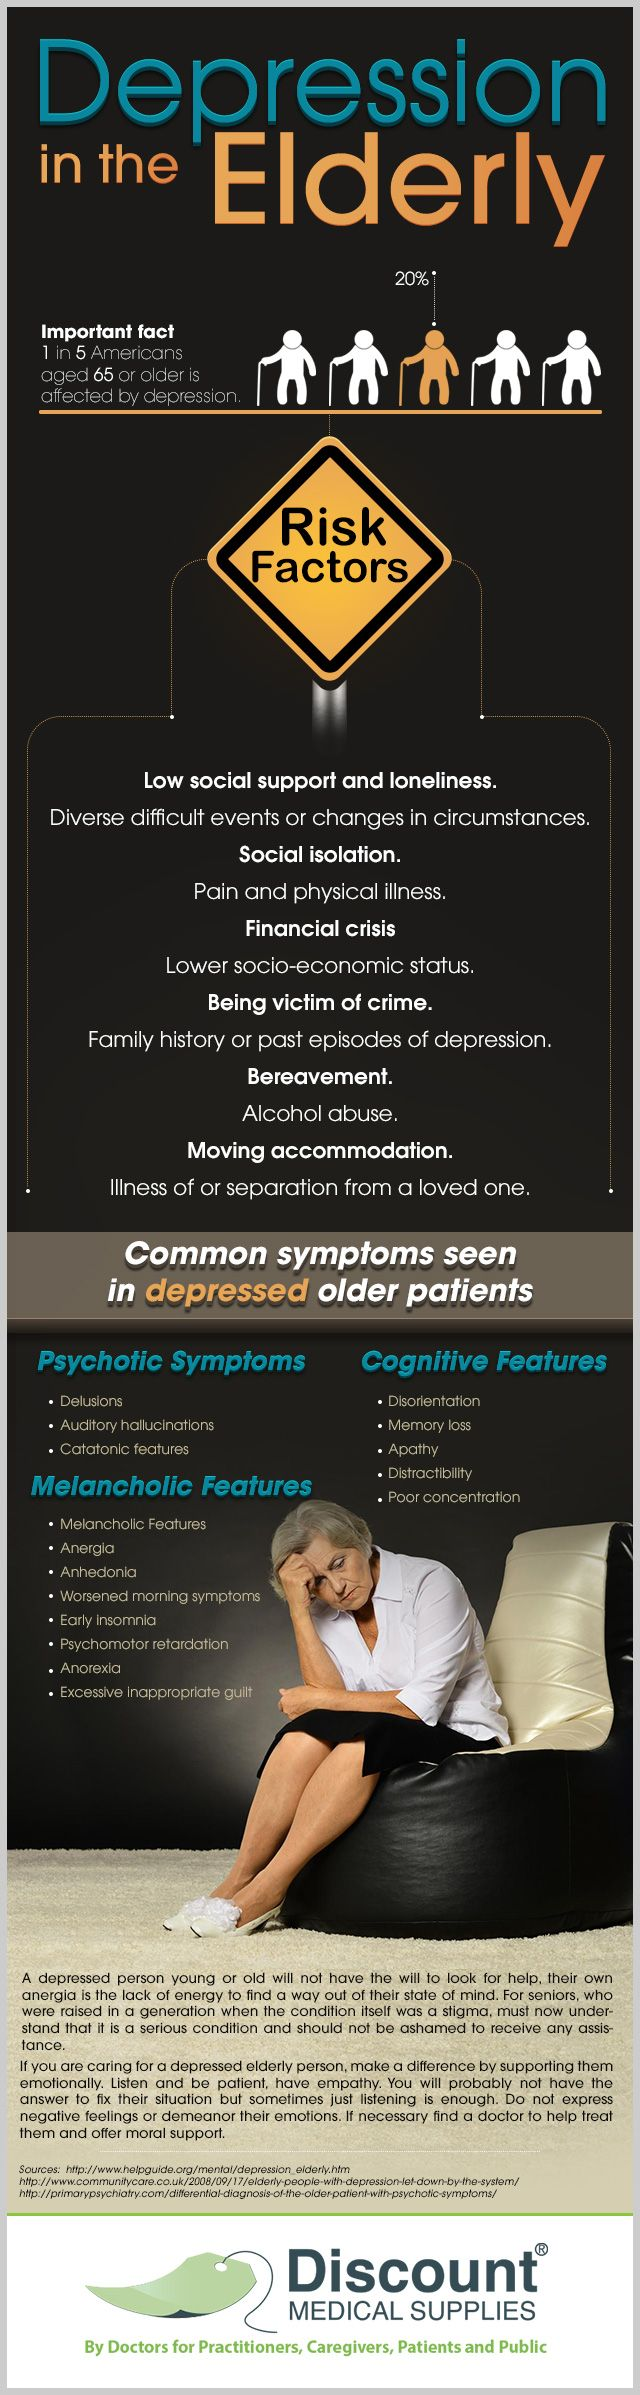 Depression in the Elderly #Infographic #Depression (Happy to pin for other site but you should also check out my page: www.greenwoodcounselingcenter.com )